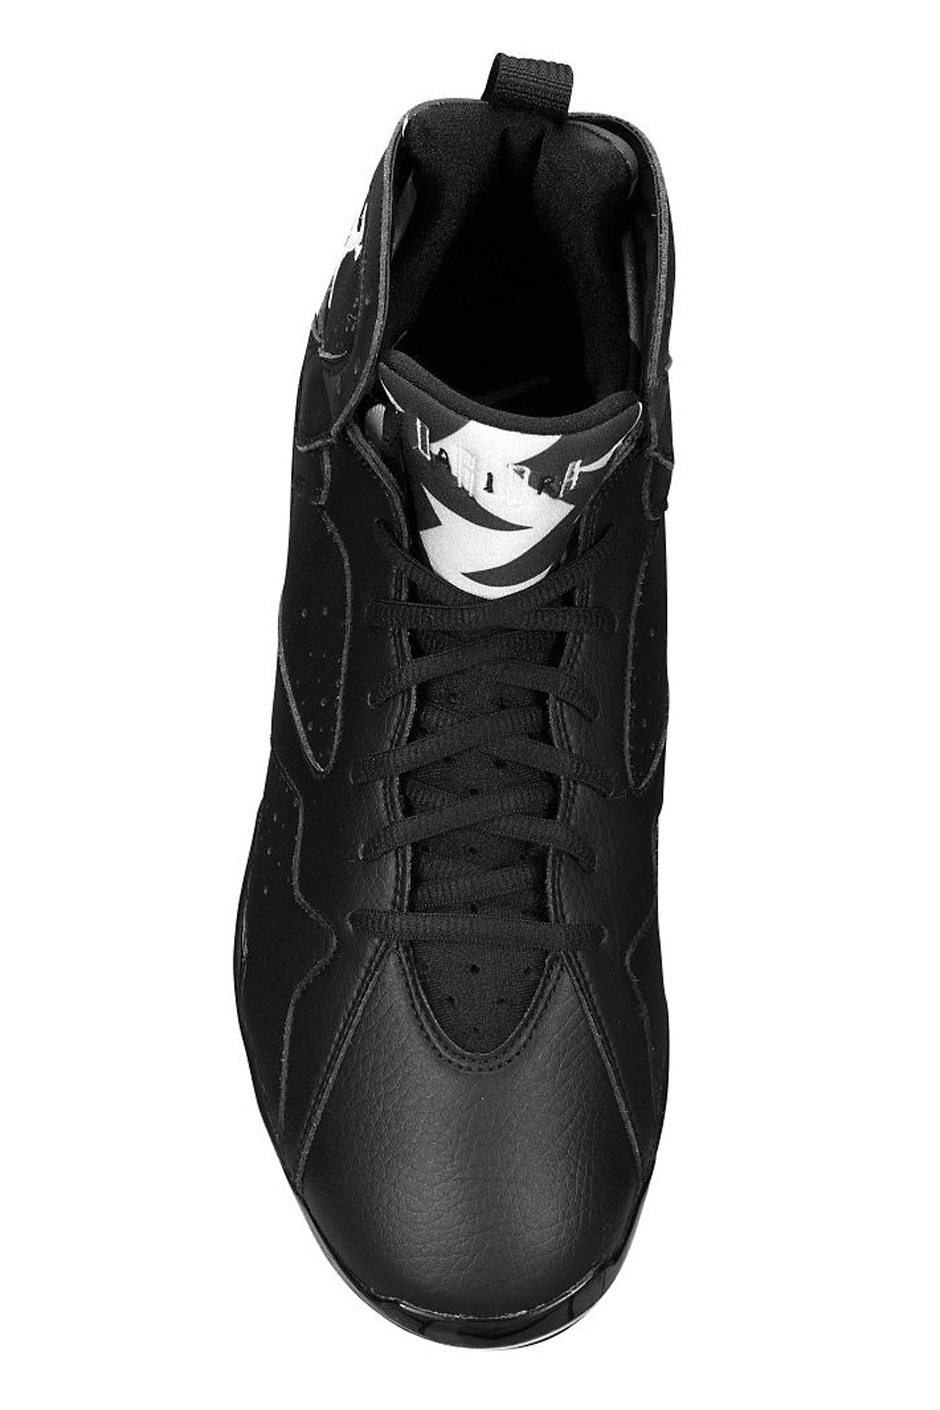 air jordan 7 cleat black white 4